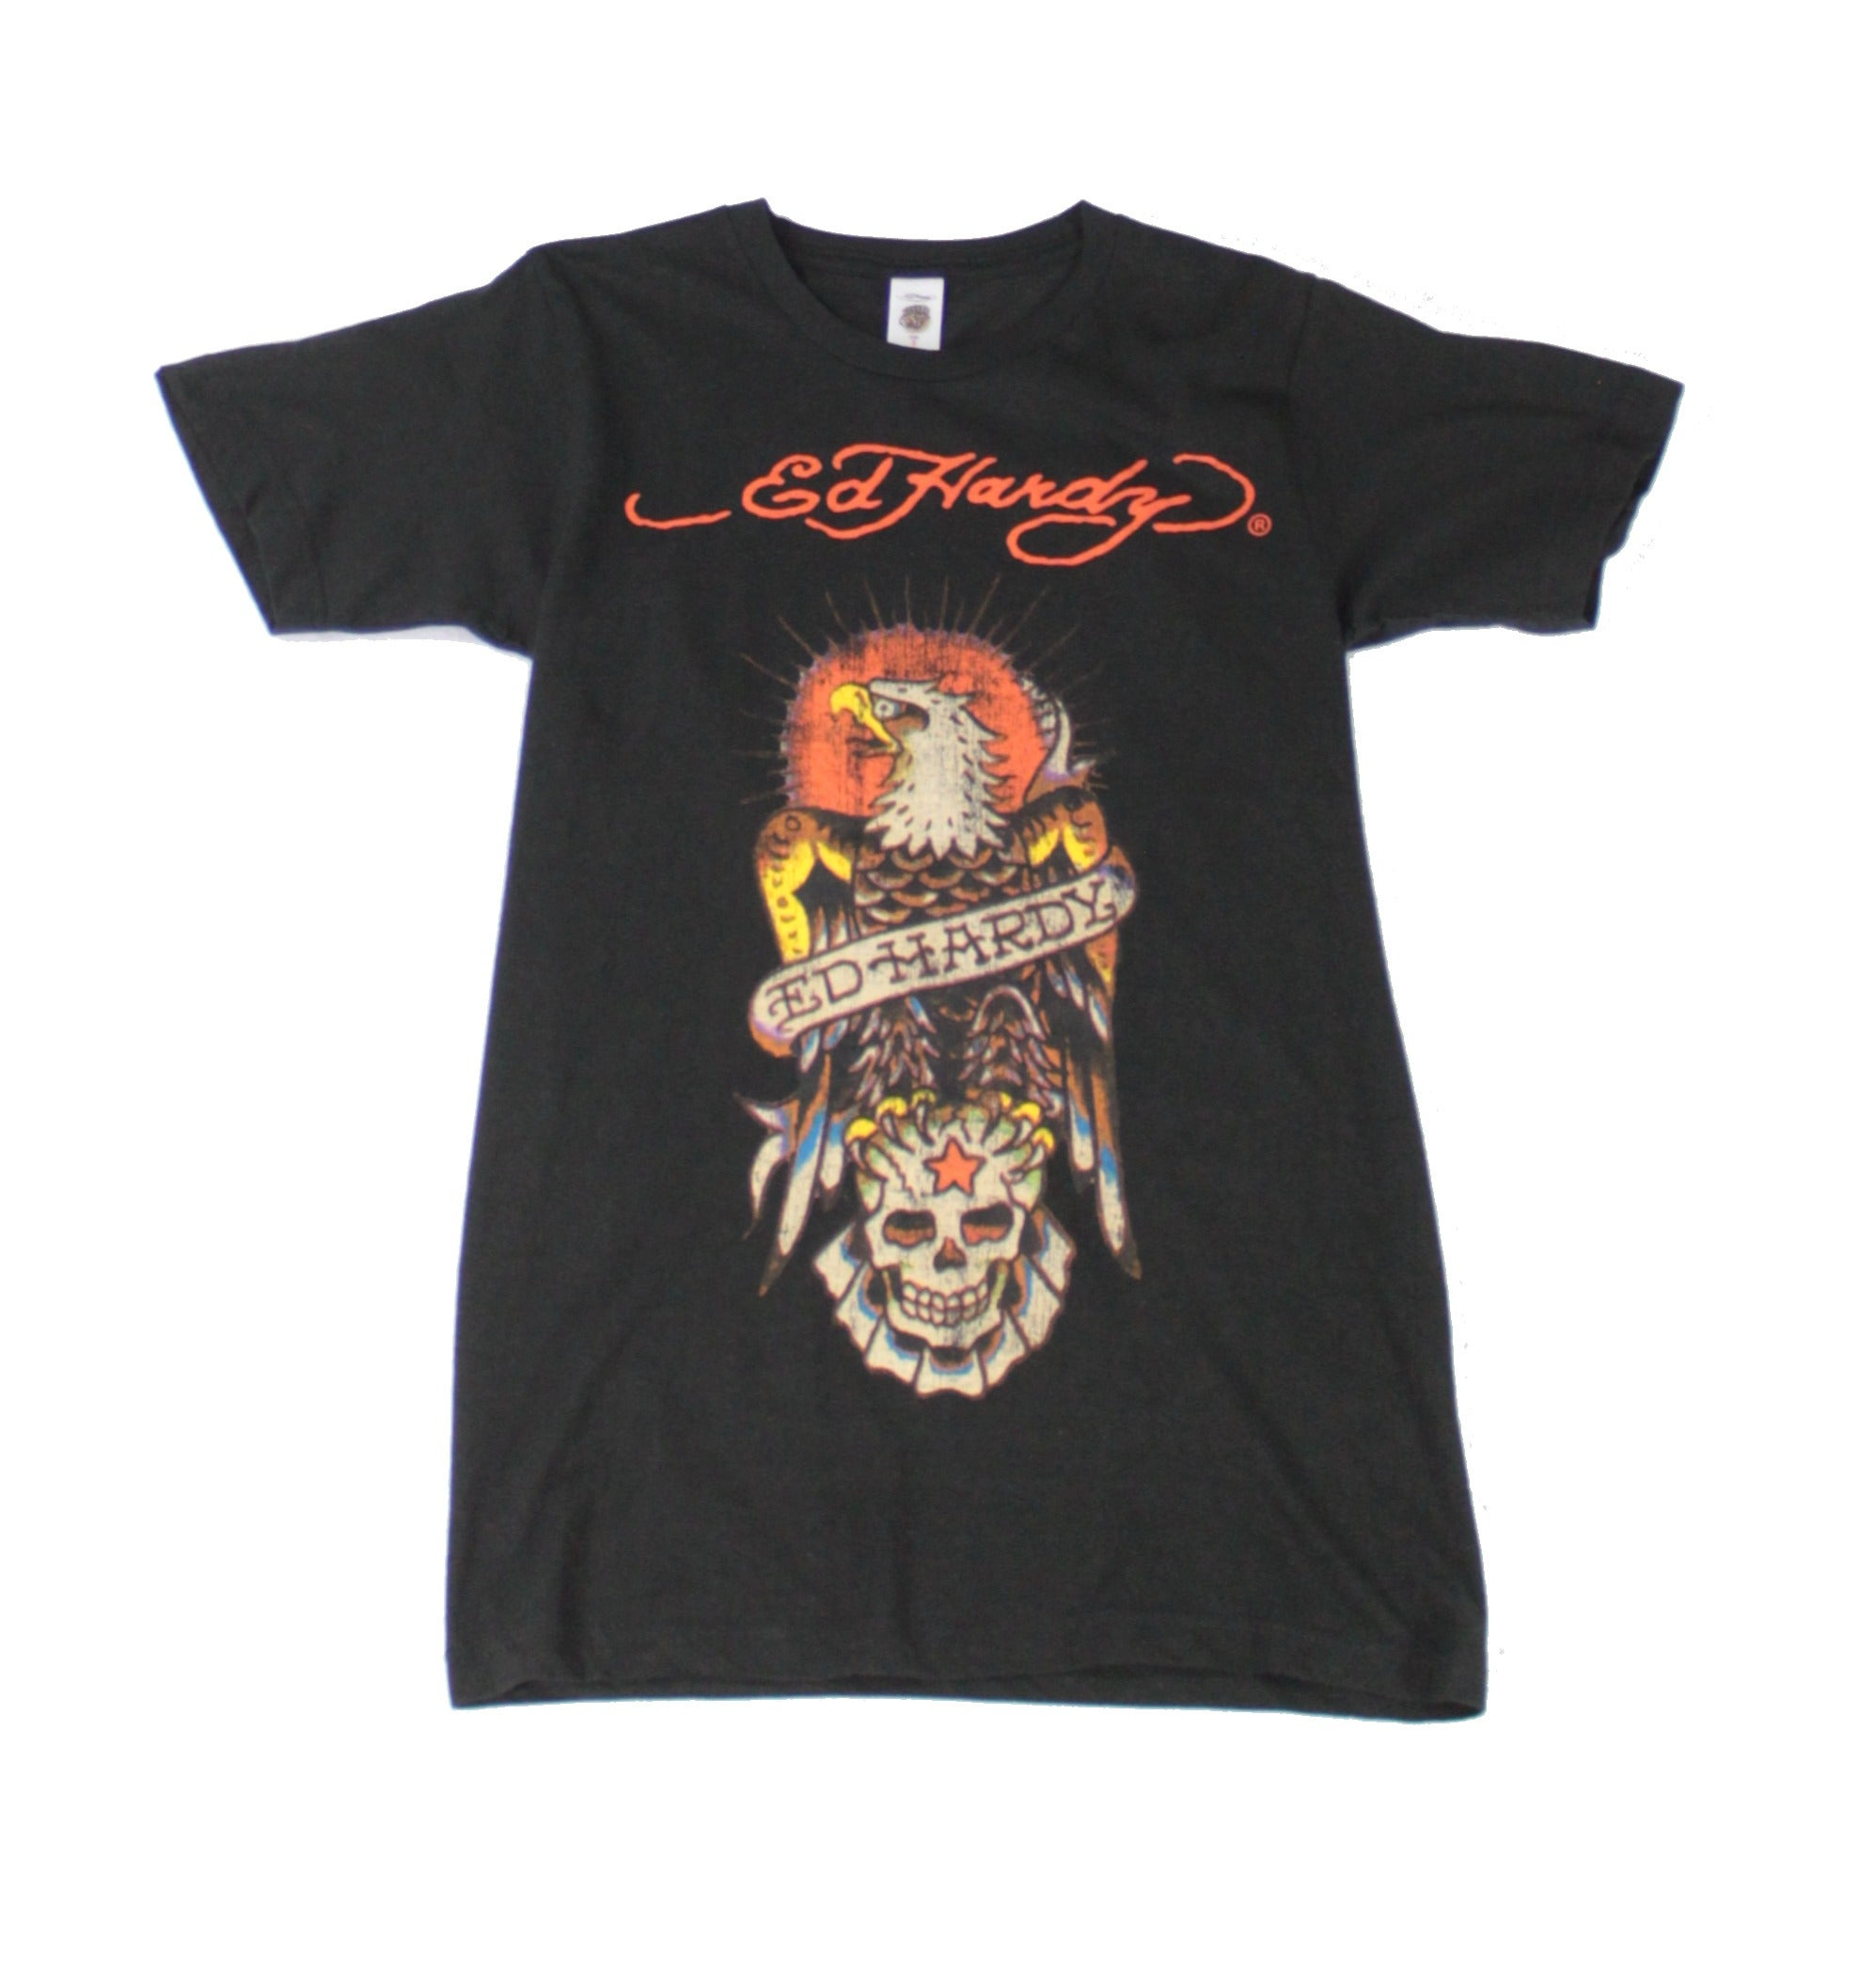 Ed Hardy Mens T-Shirt Black Size XL Crew Neck Eagle Graphic SS Tee